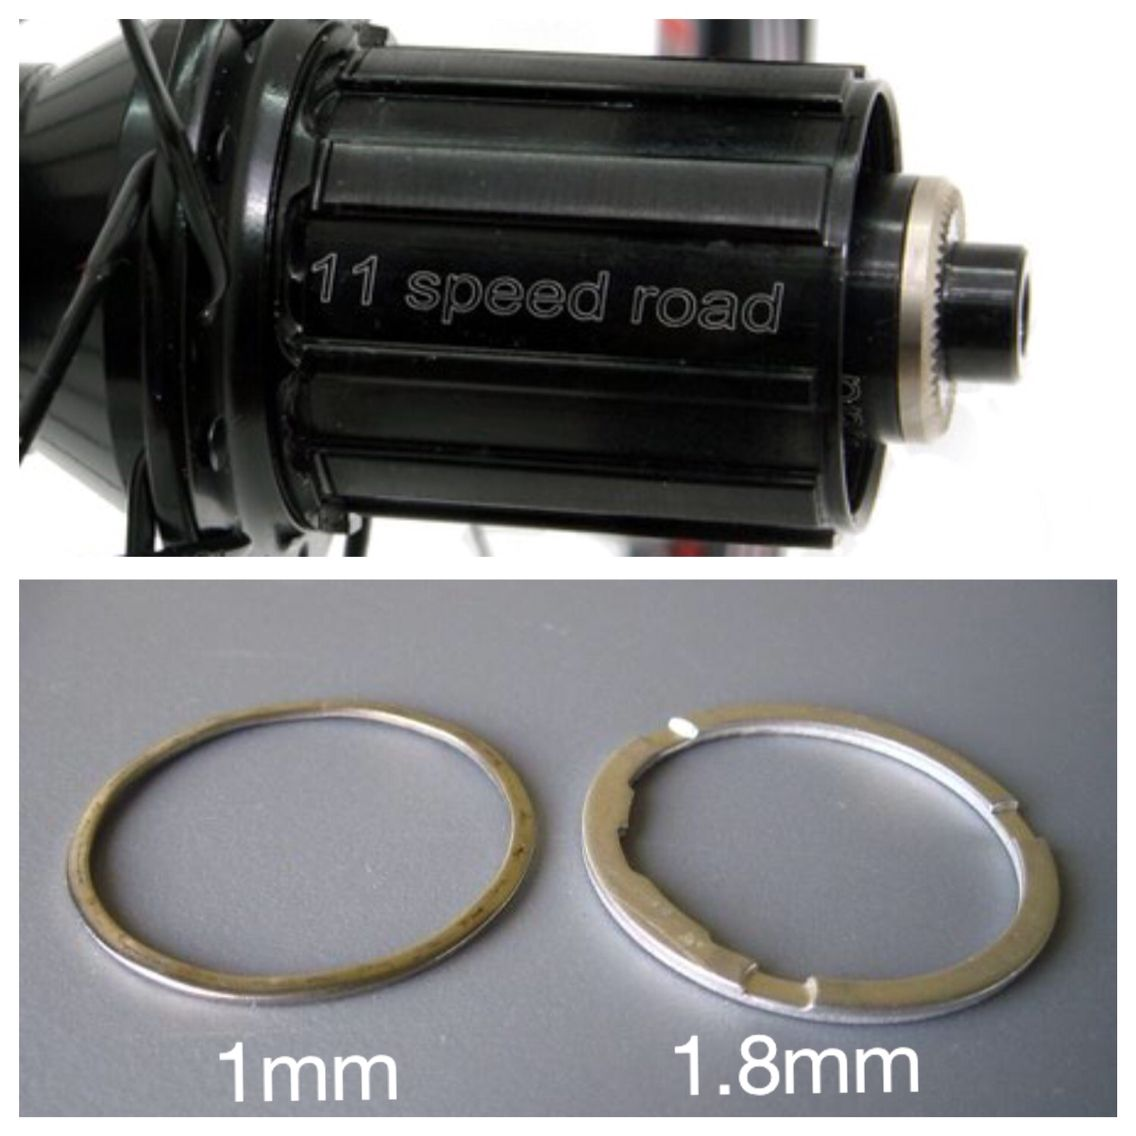 Top Tip:  When fitting a 10 Speed Cassette to an 11 Speed Free Hub, you must use a 1mm and 1.8mm Cassette Spacer to ensure there's no side or rotational play. Side play and the slightest rotational play can cause your gears to slip or shift poorly. It can wear your drivetrain quickly and damage your Free Hub.   It's not all done yet though, ensure the cassette locking is torqued to manufacturers requirements and you could save yourself money in the long run!